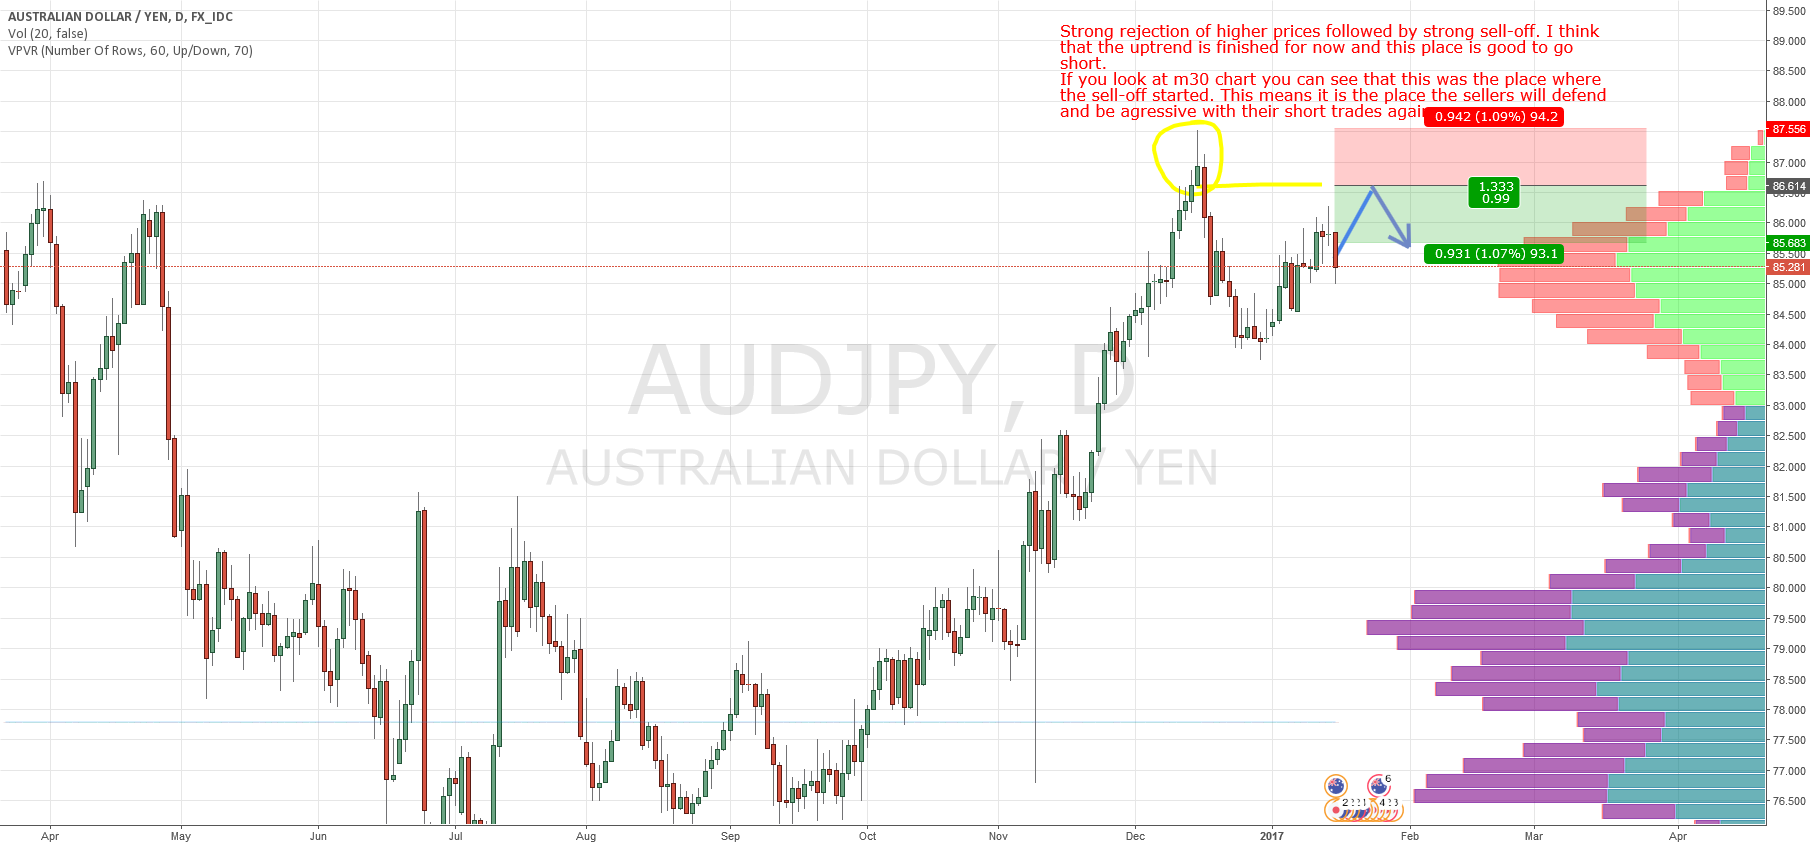 AUD/JPY swing based on Market Profile and Price Action